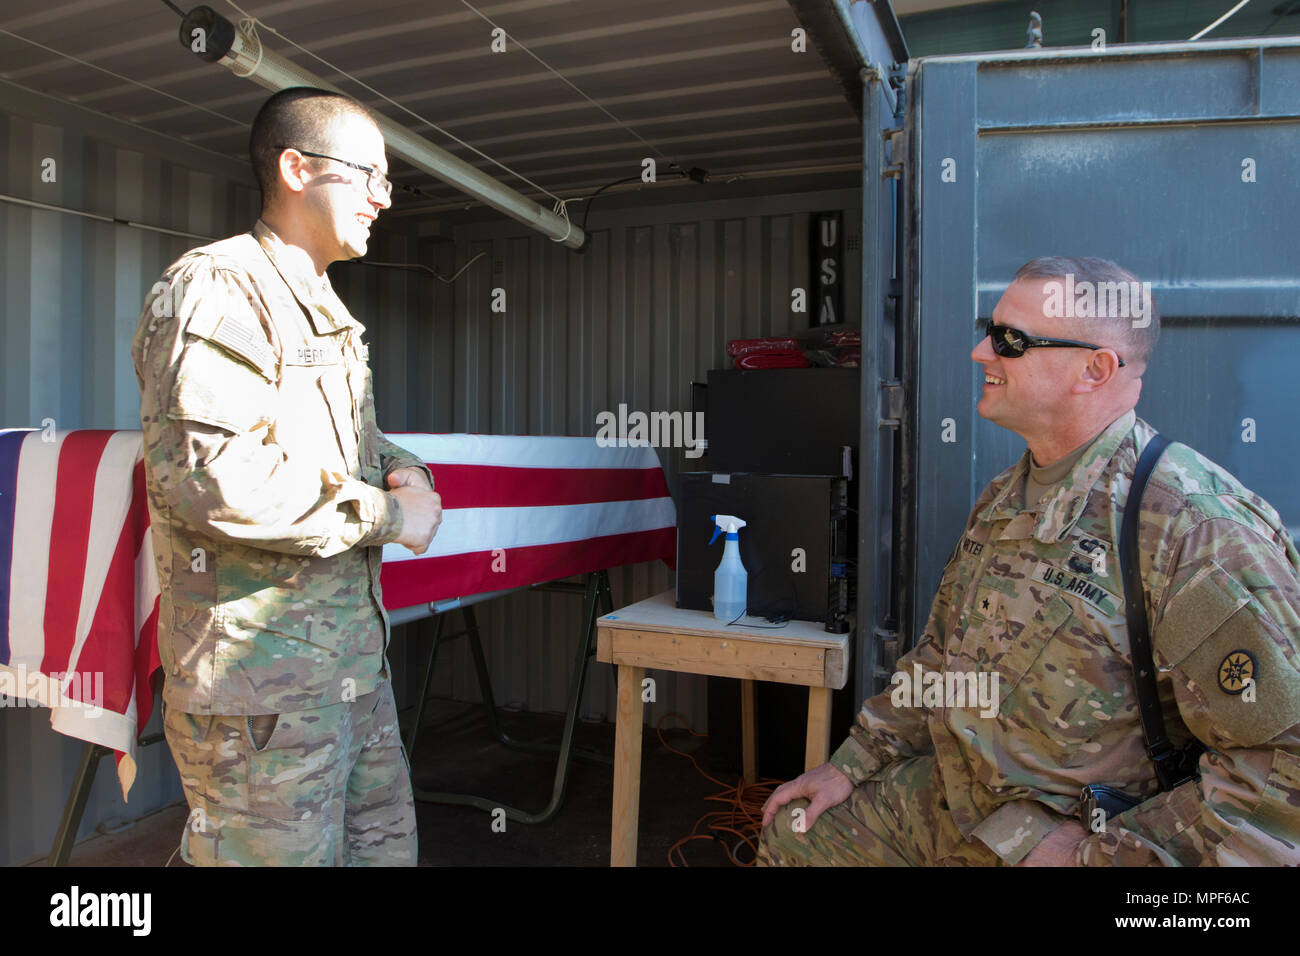 Spc. Jose Perez, a mortuary affairs specialist with the 246th Quartermaster Company (Mortuary Affairs), an U.S. Army Reserve unit based out of Mayaguez, Puerto Rico, (left), explains the capabilities of a Mobile Integrated Remains Collections System (MIRCS) to Brig. Gen. Robert D. Harter, deputy commanding general of the 1st Sustainment Command (Theater) / commanding general of the 316th Sustainment Command (Expeditionary), (right), in Erbil, Iraq on February 3, 2017. (U.S. Army photo by Staff Sgt. Dalton Smith) - Stock Image